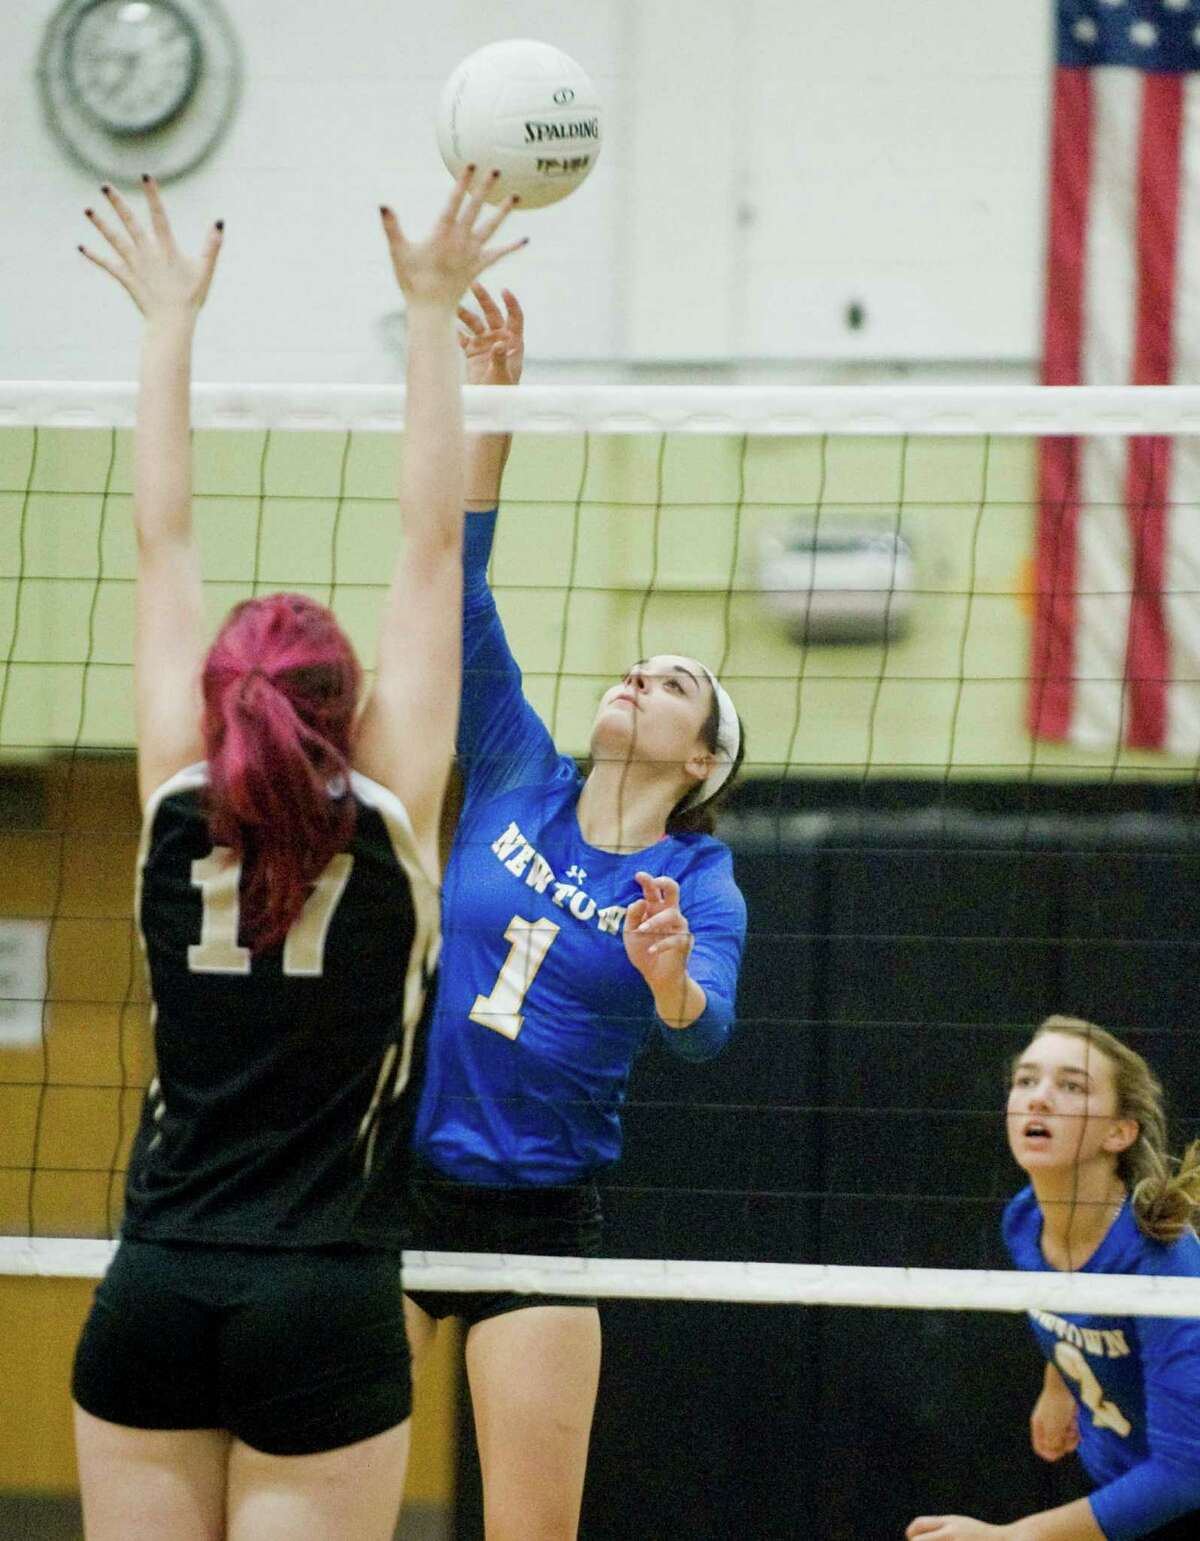 Newtown High School's Jamie Calandro tipping the ball over the net in a game against Joel Barlow High School, played at Barlow. Monday, Oct. 19, 2015